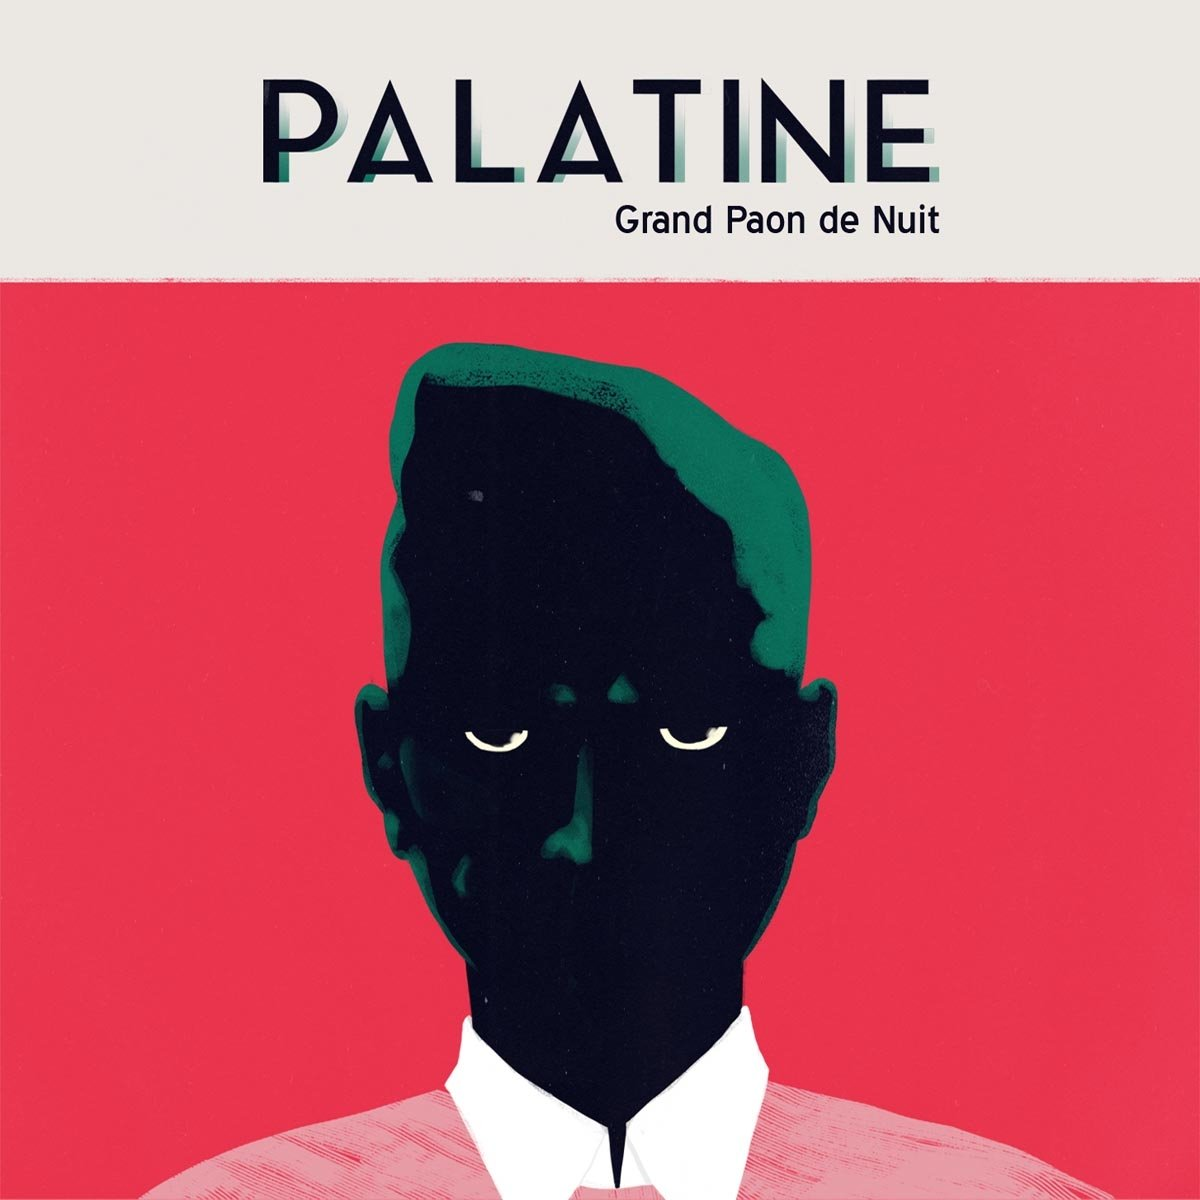 Palatine: learn to create stylish images